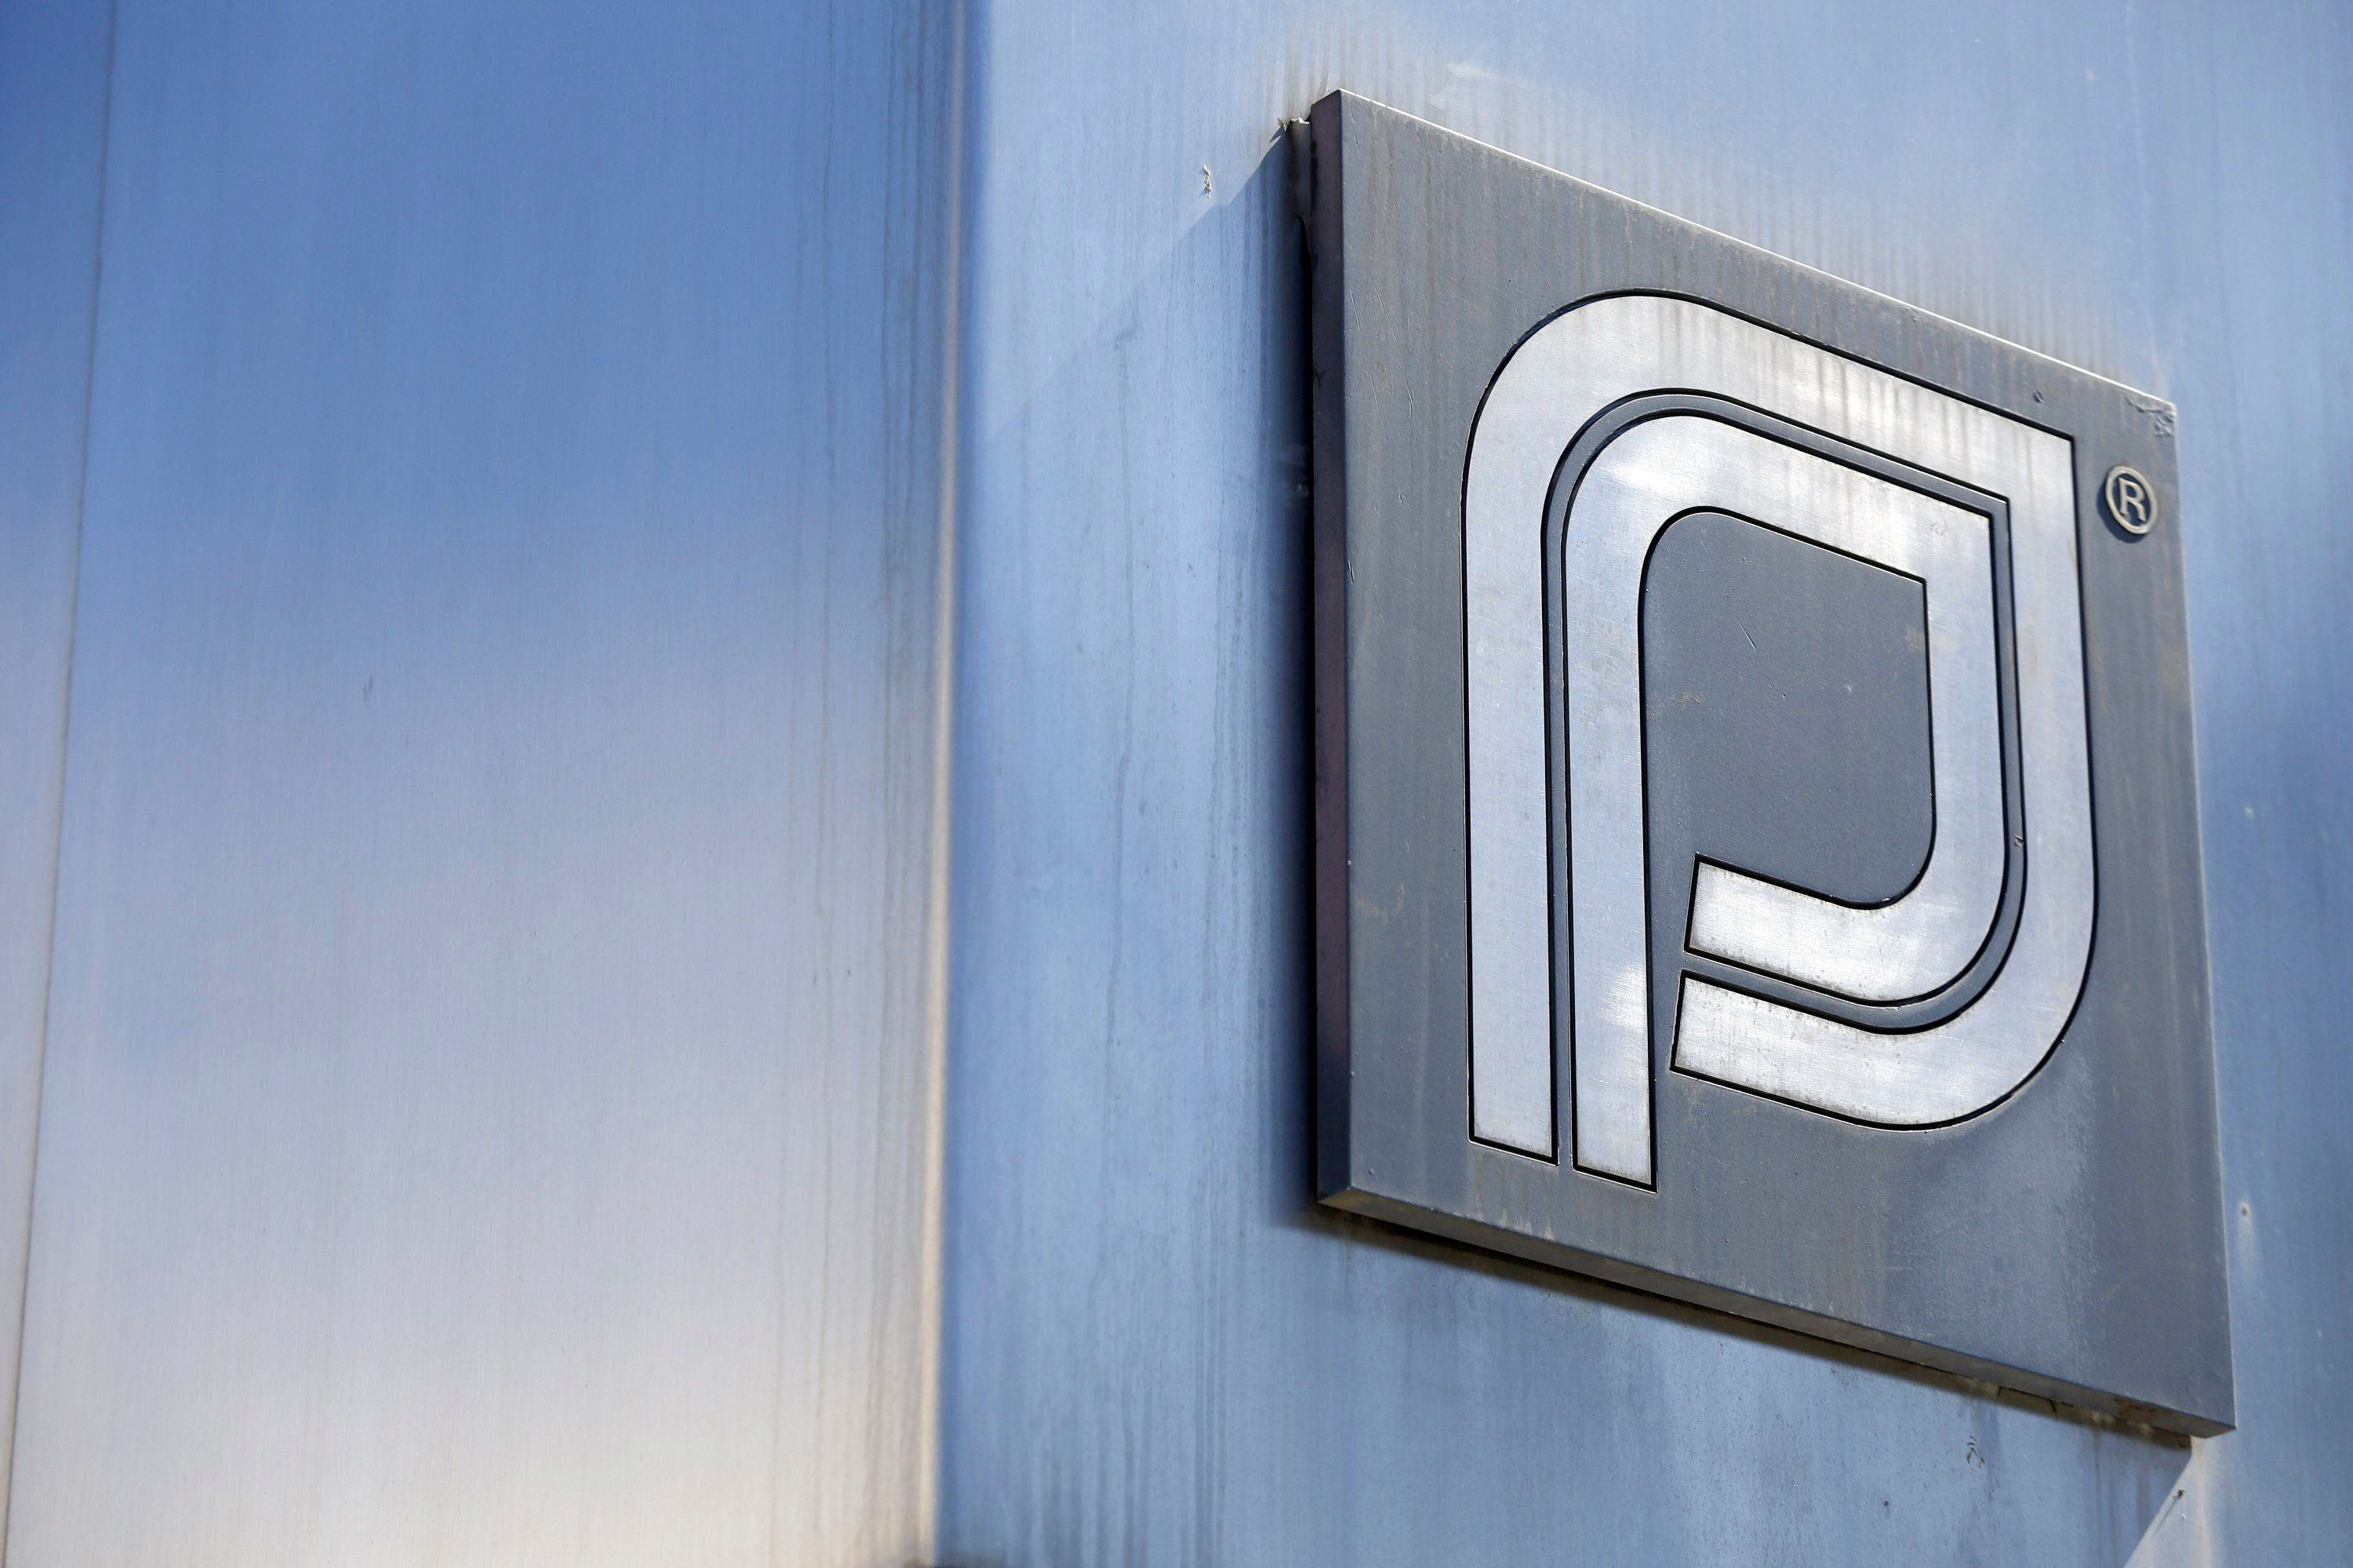 The Planned Parenthood logo is pictured outside a clinic in Boston, Massachusetts, June 27, 2014. The U.S. Supreme Court handed a victory to anti-abortion activists on Thursday by making it harder for states to enact laws aimed at helping patients entering abortion clinics to avoid protesters, striking down a Massachusetts statute that had created a no-entry zone. REUTERS/Dominick Reuter  (UNITED STATES - Tags: CRIME LAW HEALTH SOCIETY BUSINESS LOGO)